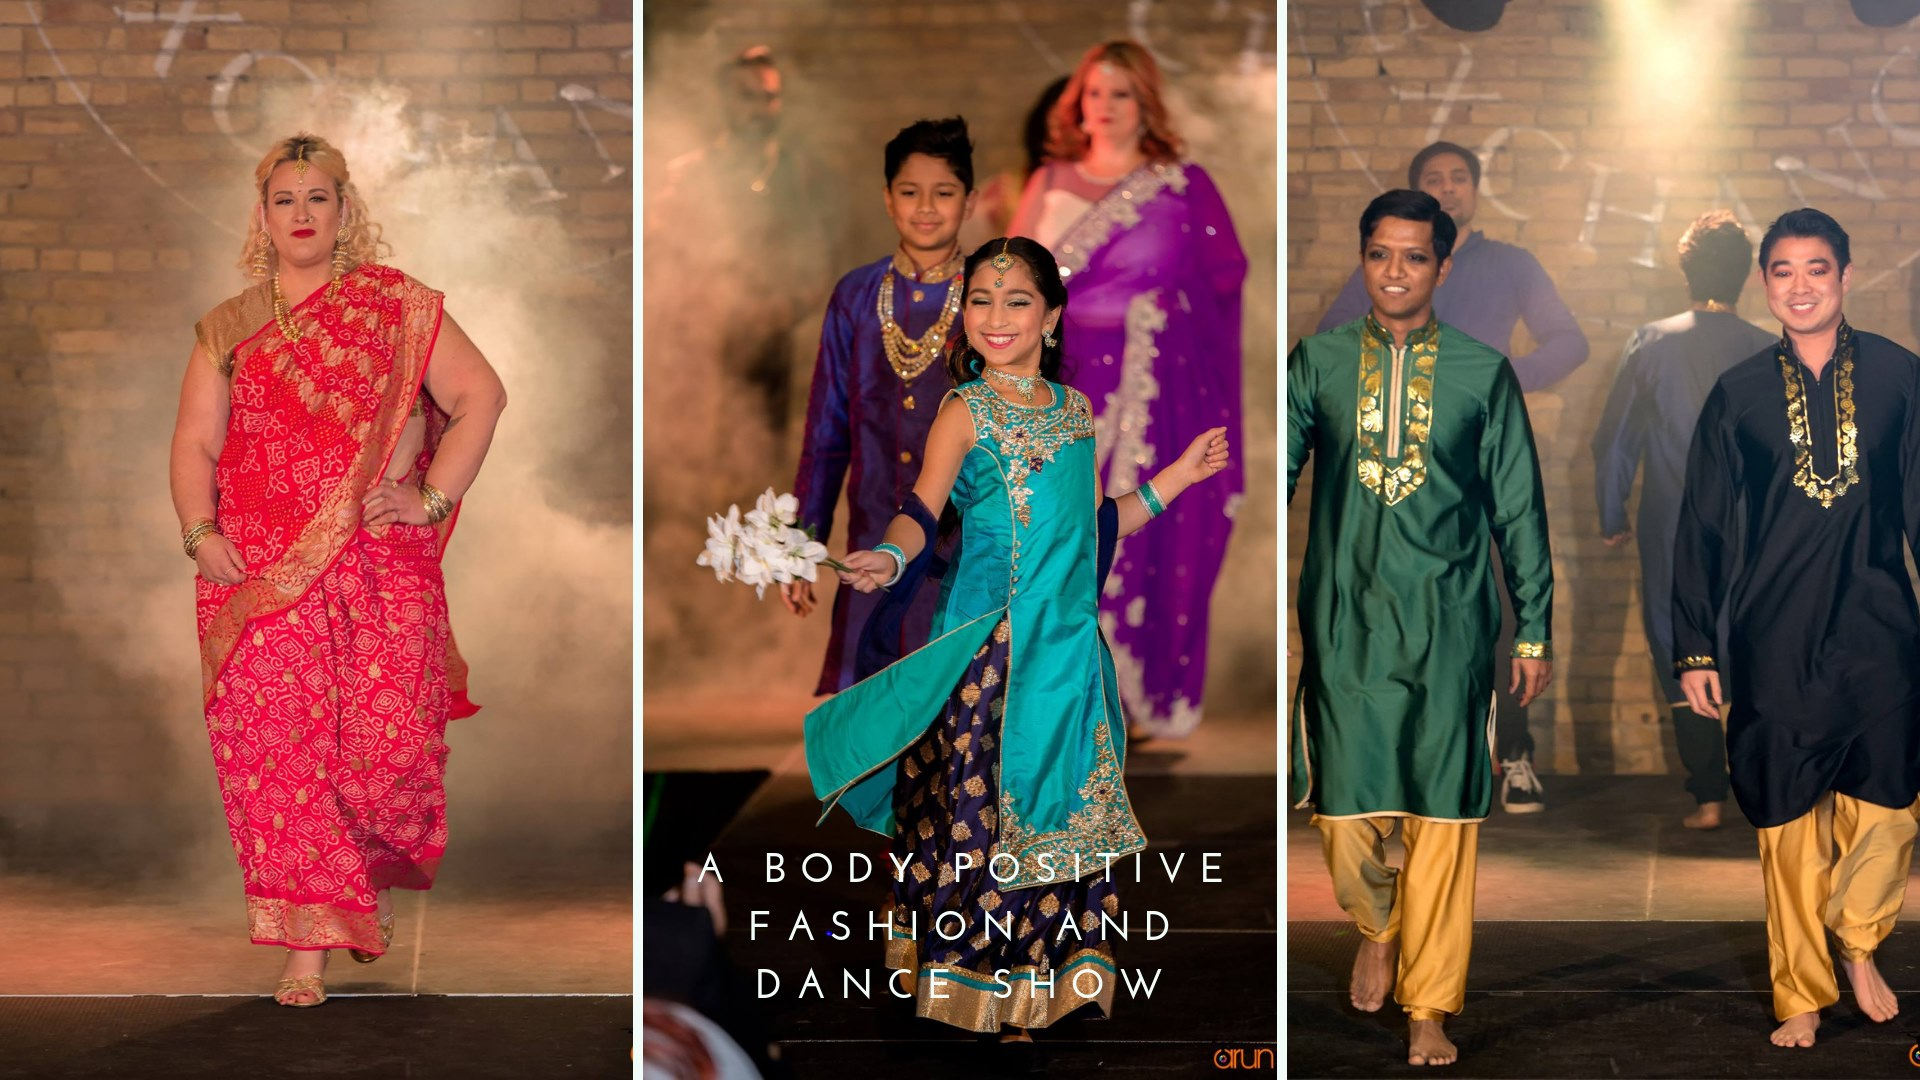 SLAY! - Don't miss our body-positive fashion and dance show, coming September 22nd!